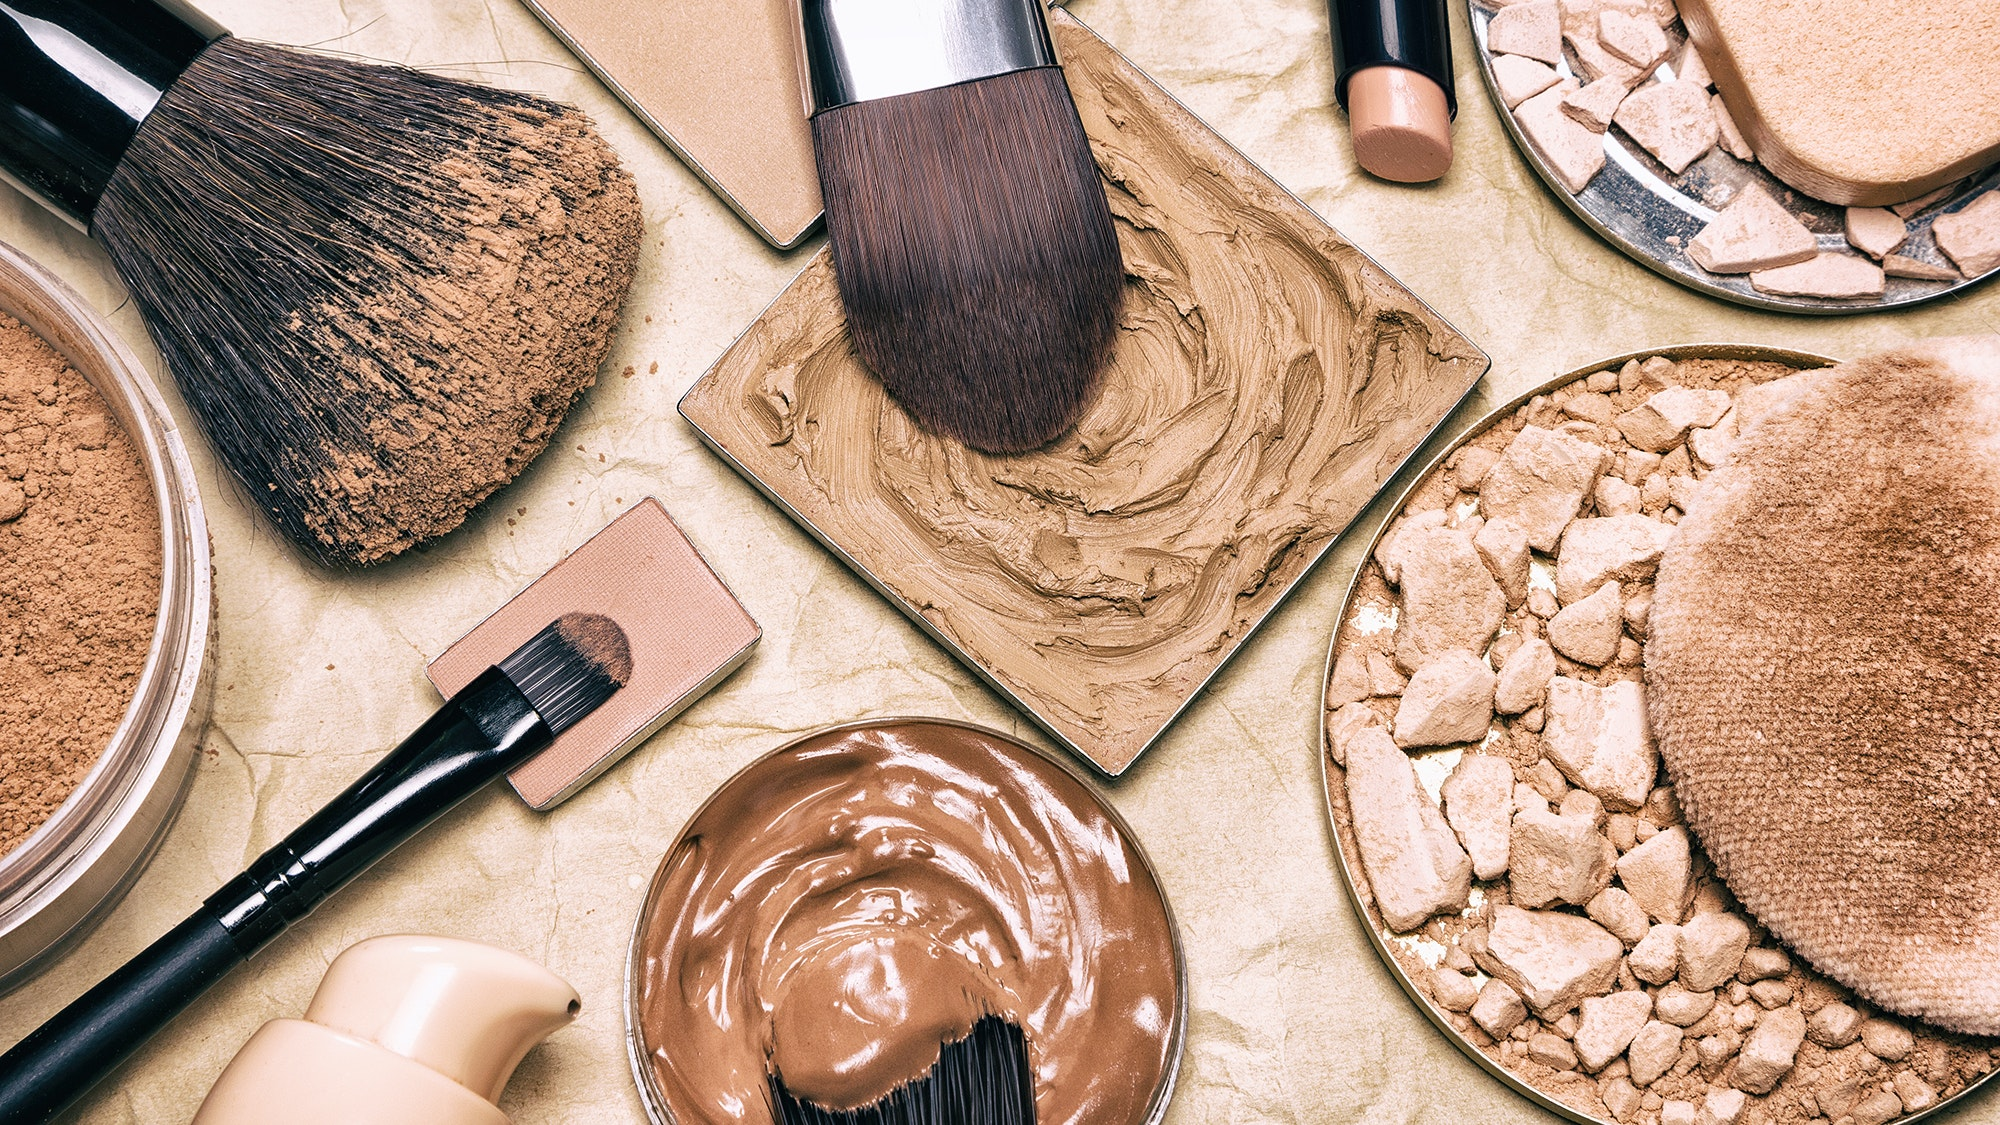 How to Do Your Makeup When You Have Melasma, According to a Professional Makeup Artist